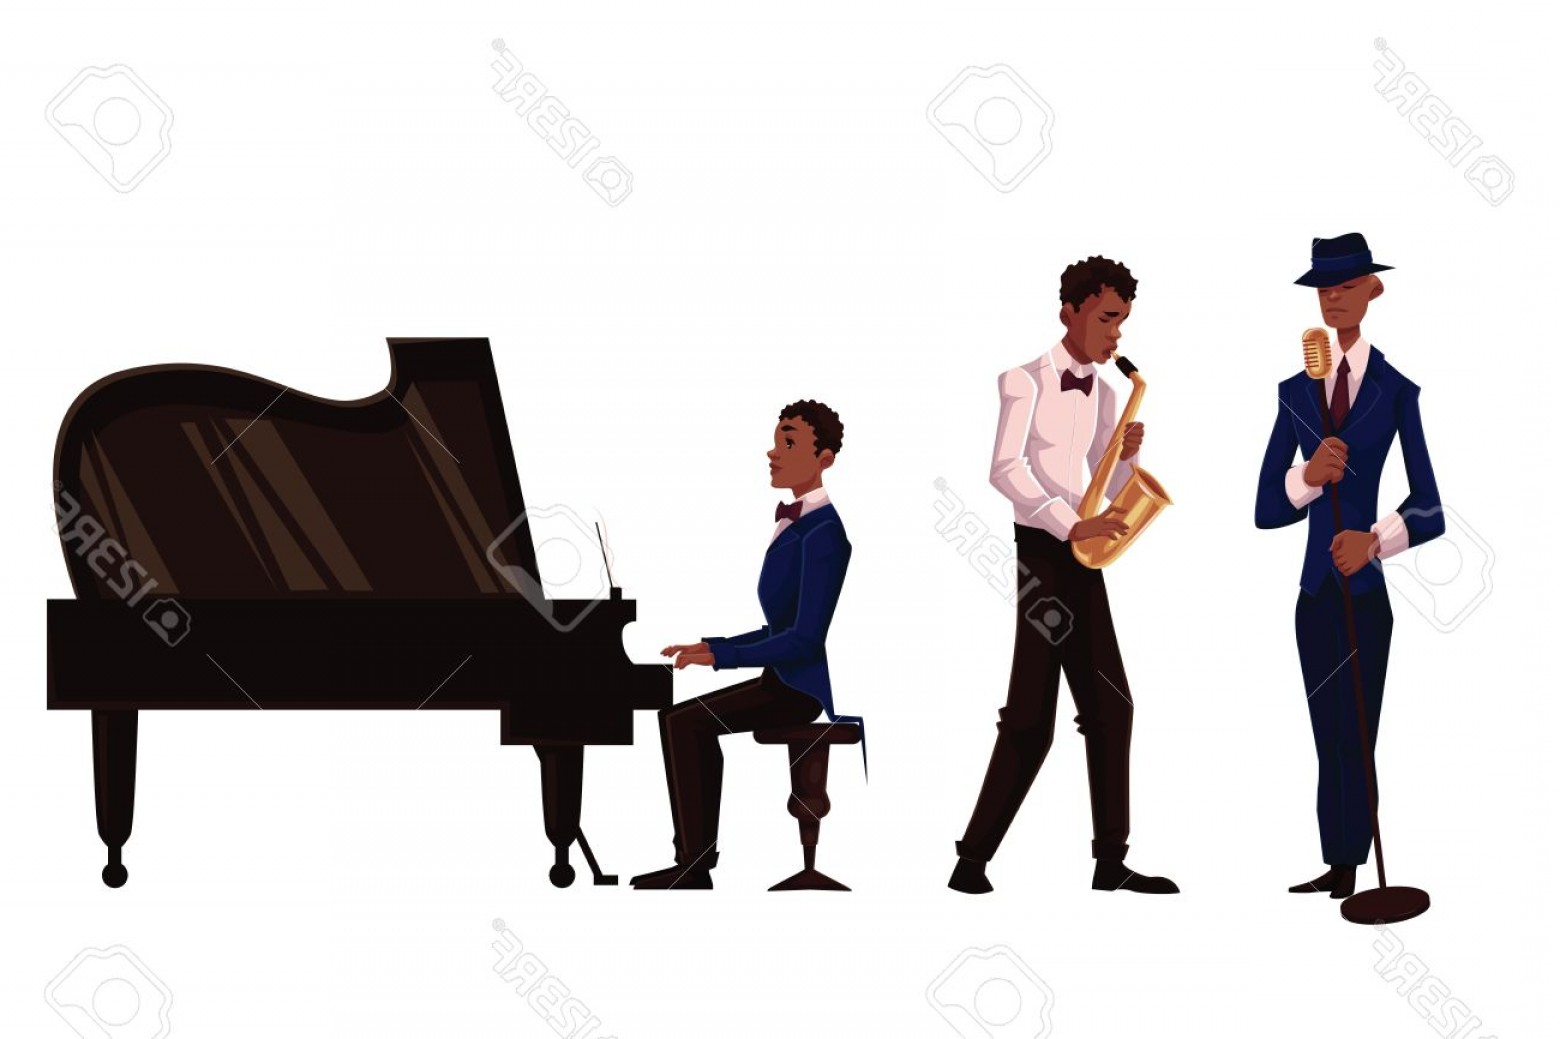 Musician Person Vector: Photostock Vector Handsome African Male Singer Saxophone Player And Pianist Cartoon Vector Illustration Isolated On Wh